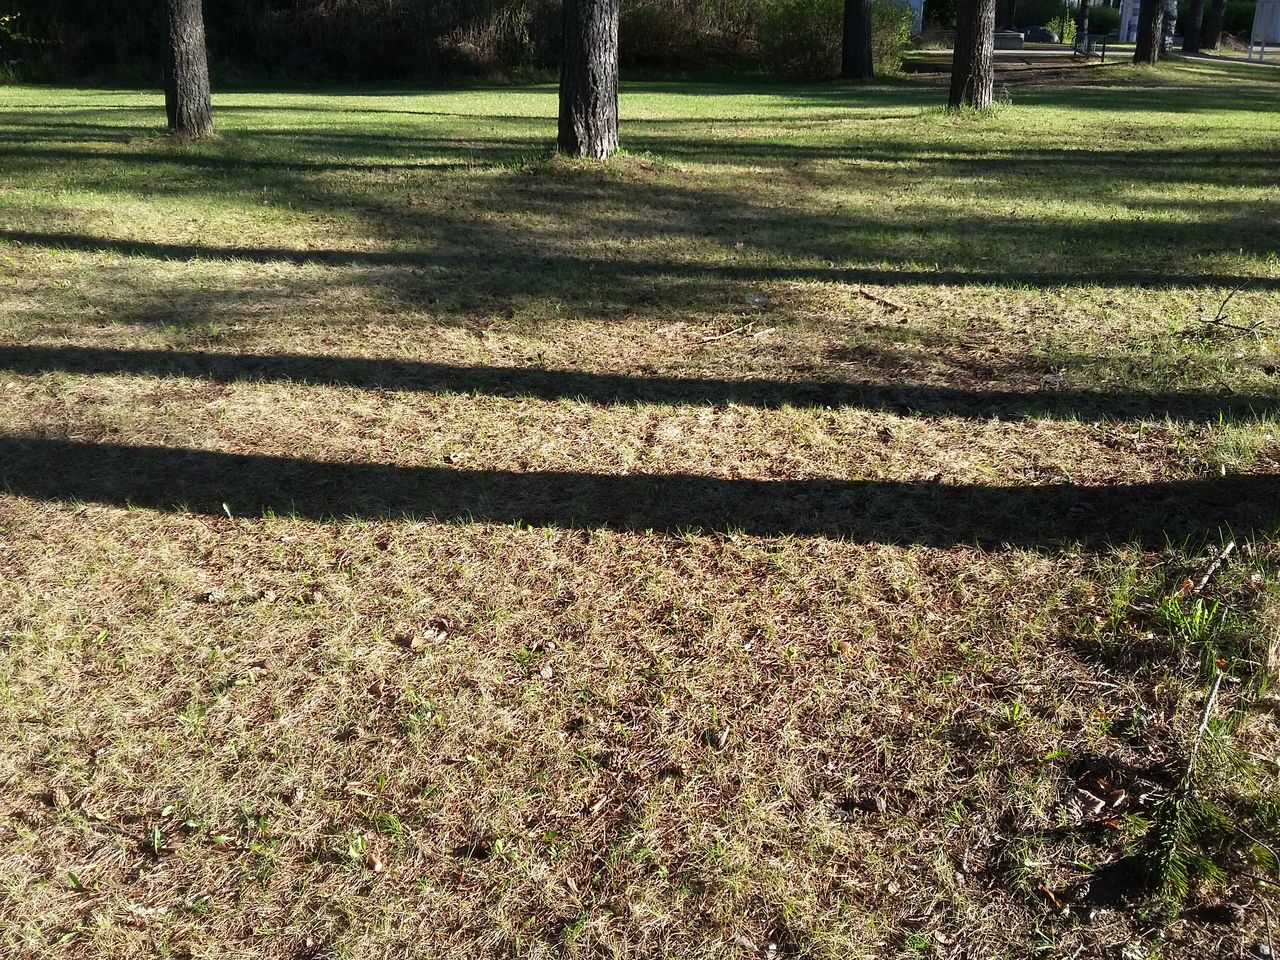 grass, sunlight, shadow, day, nature, outdoors, no people, tree